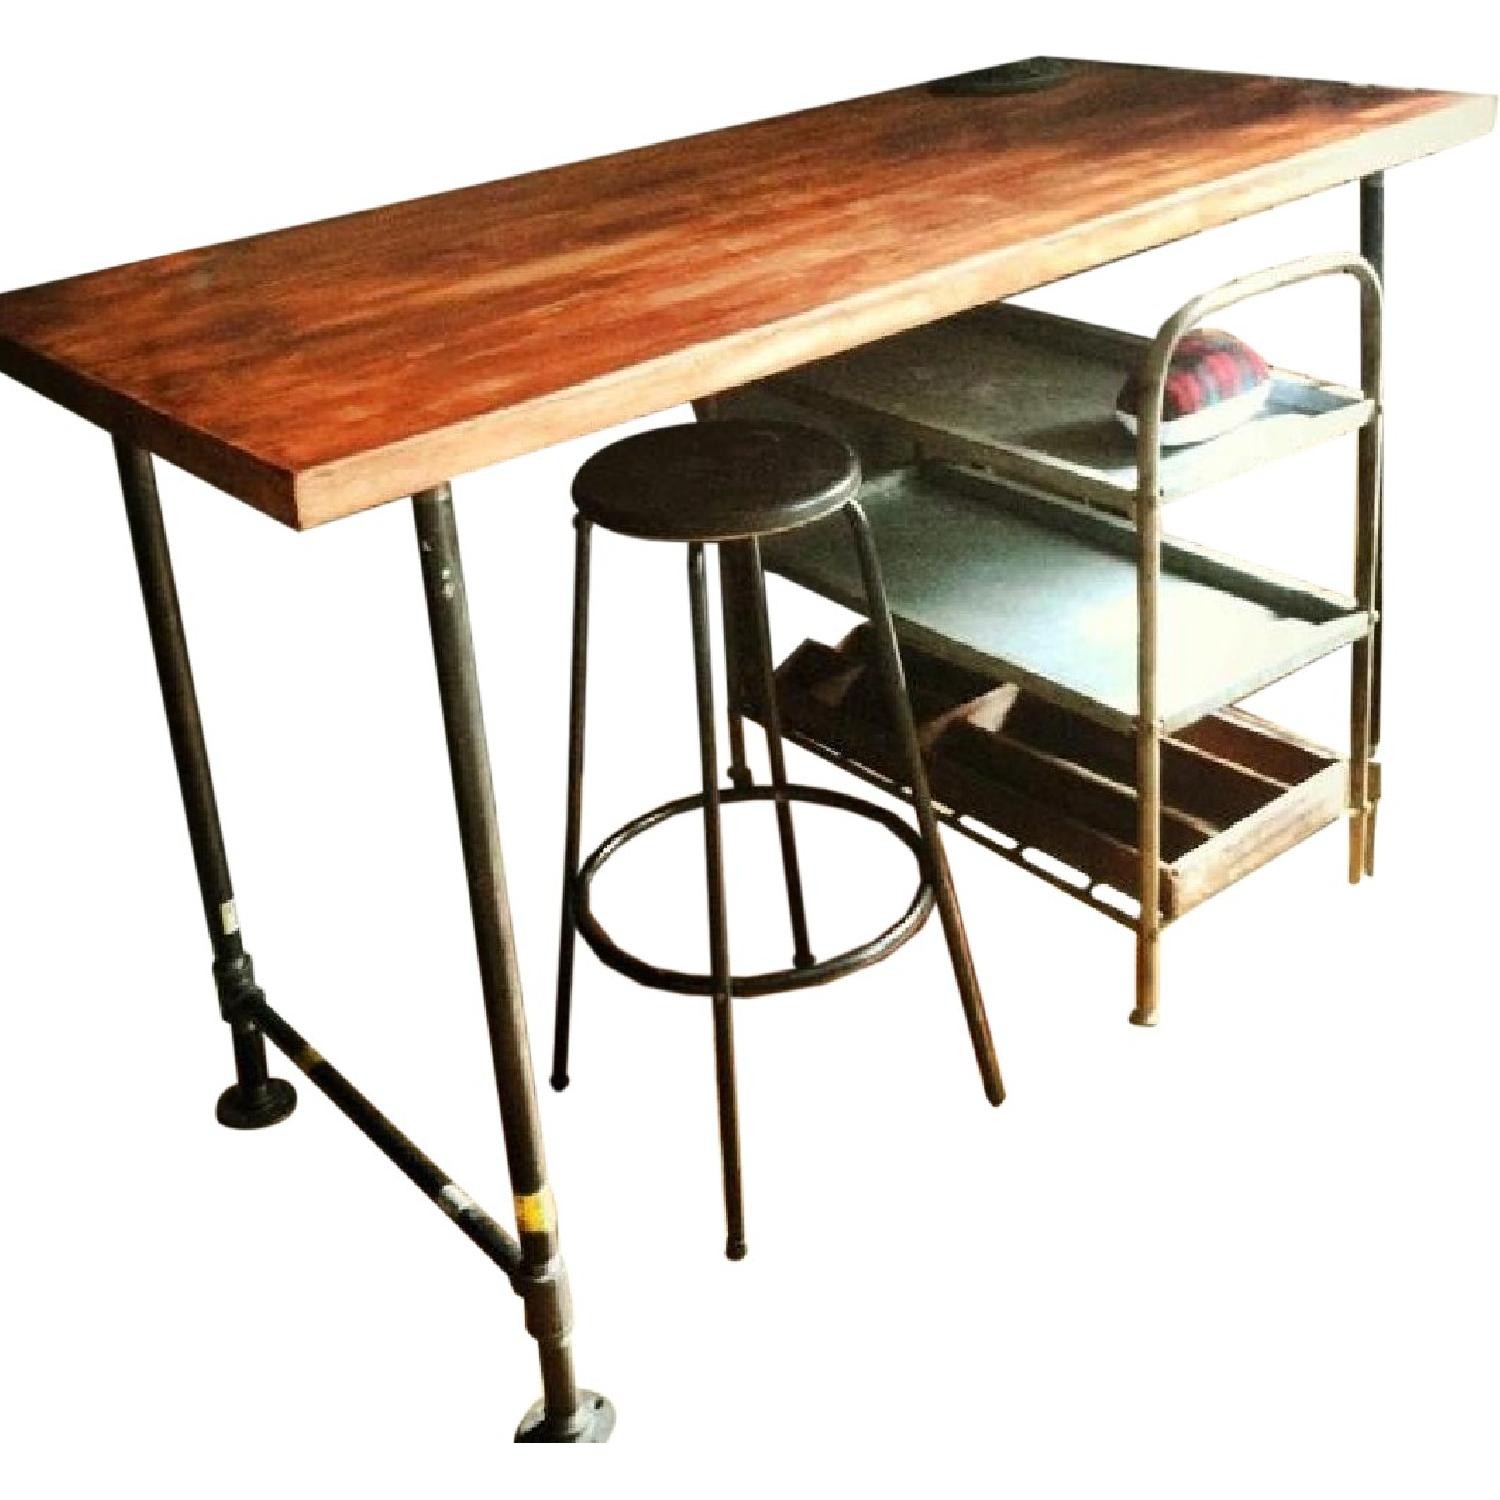 Counter Height Industrial Work Bench/Island - image-0